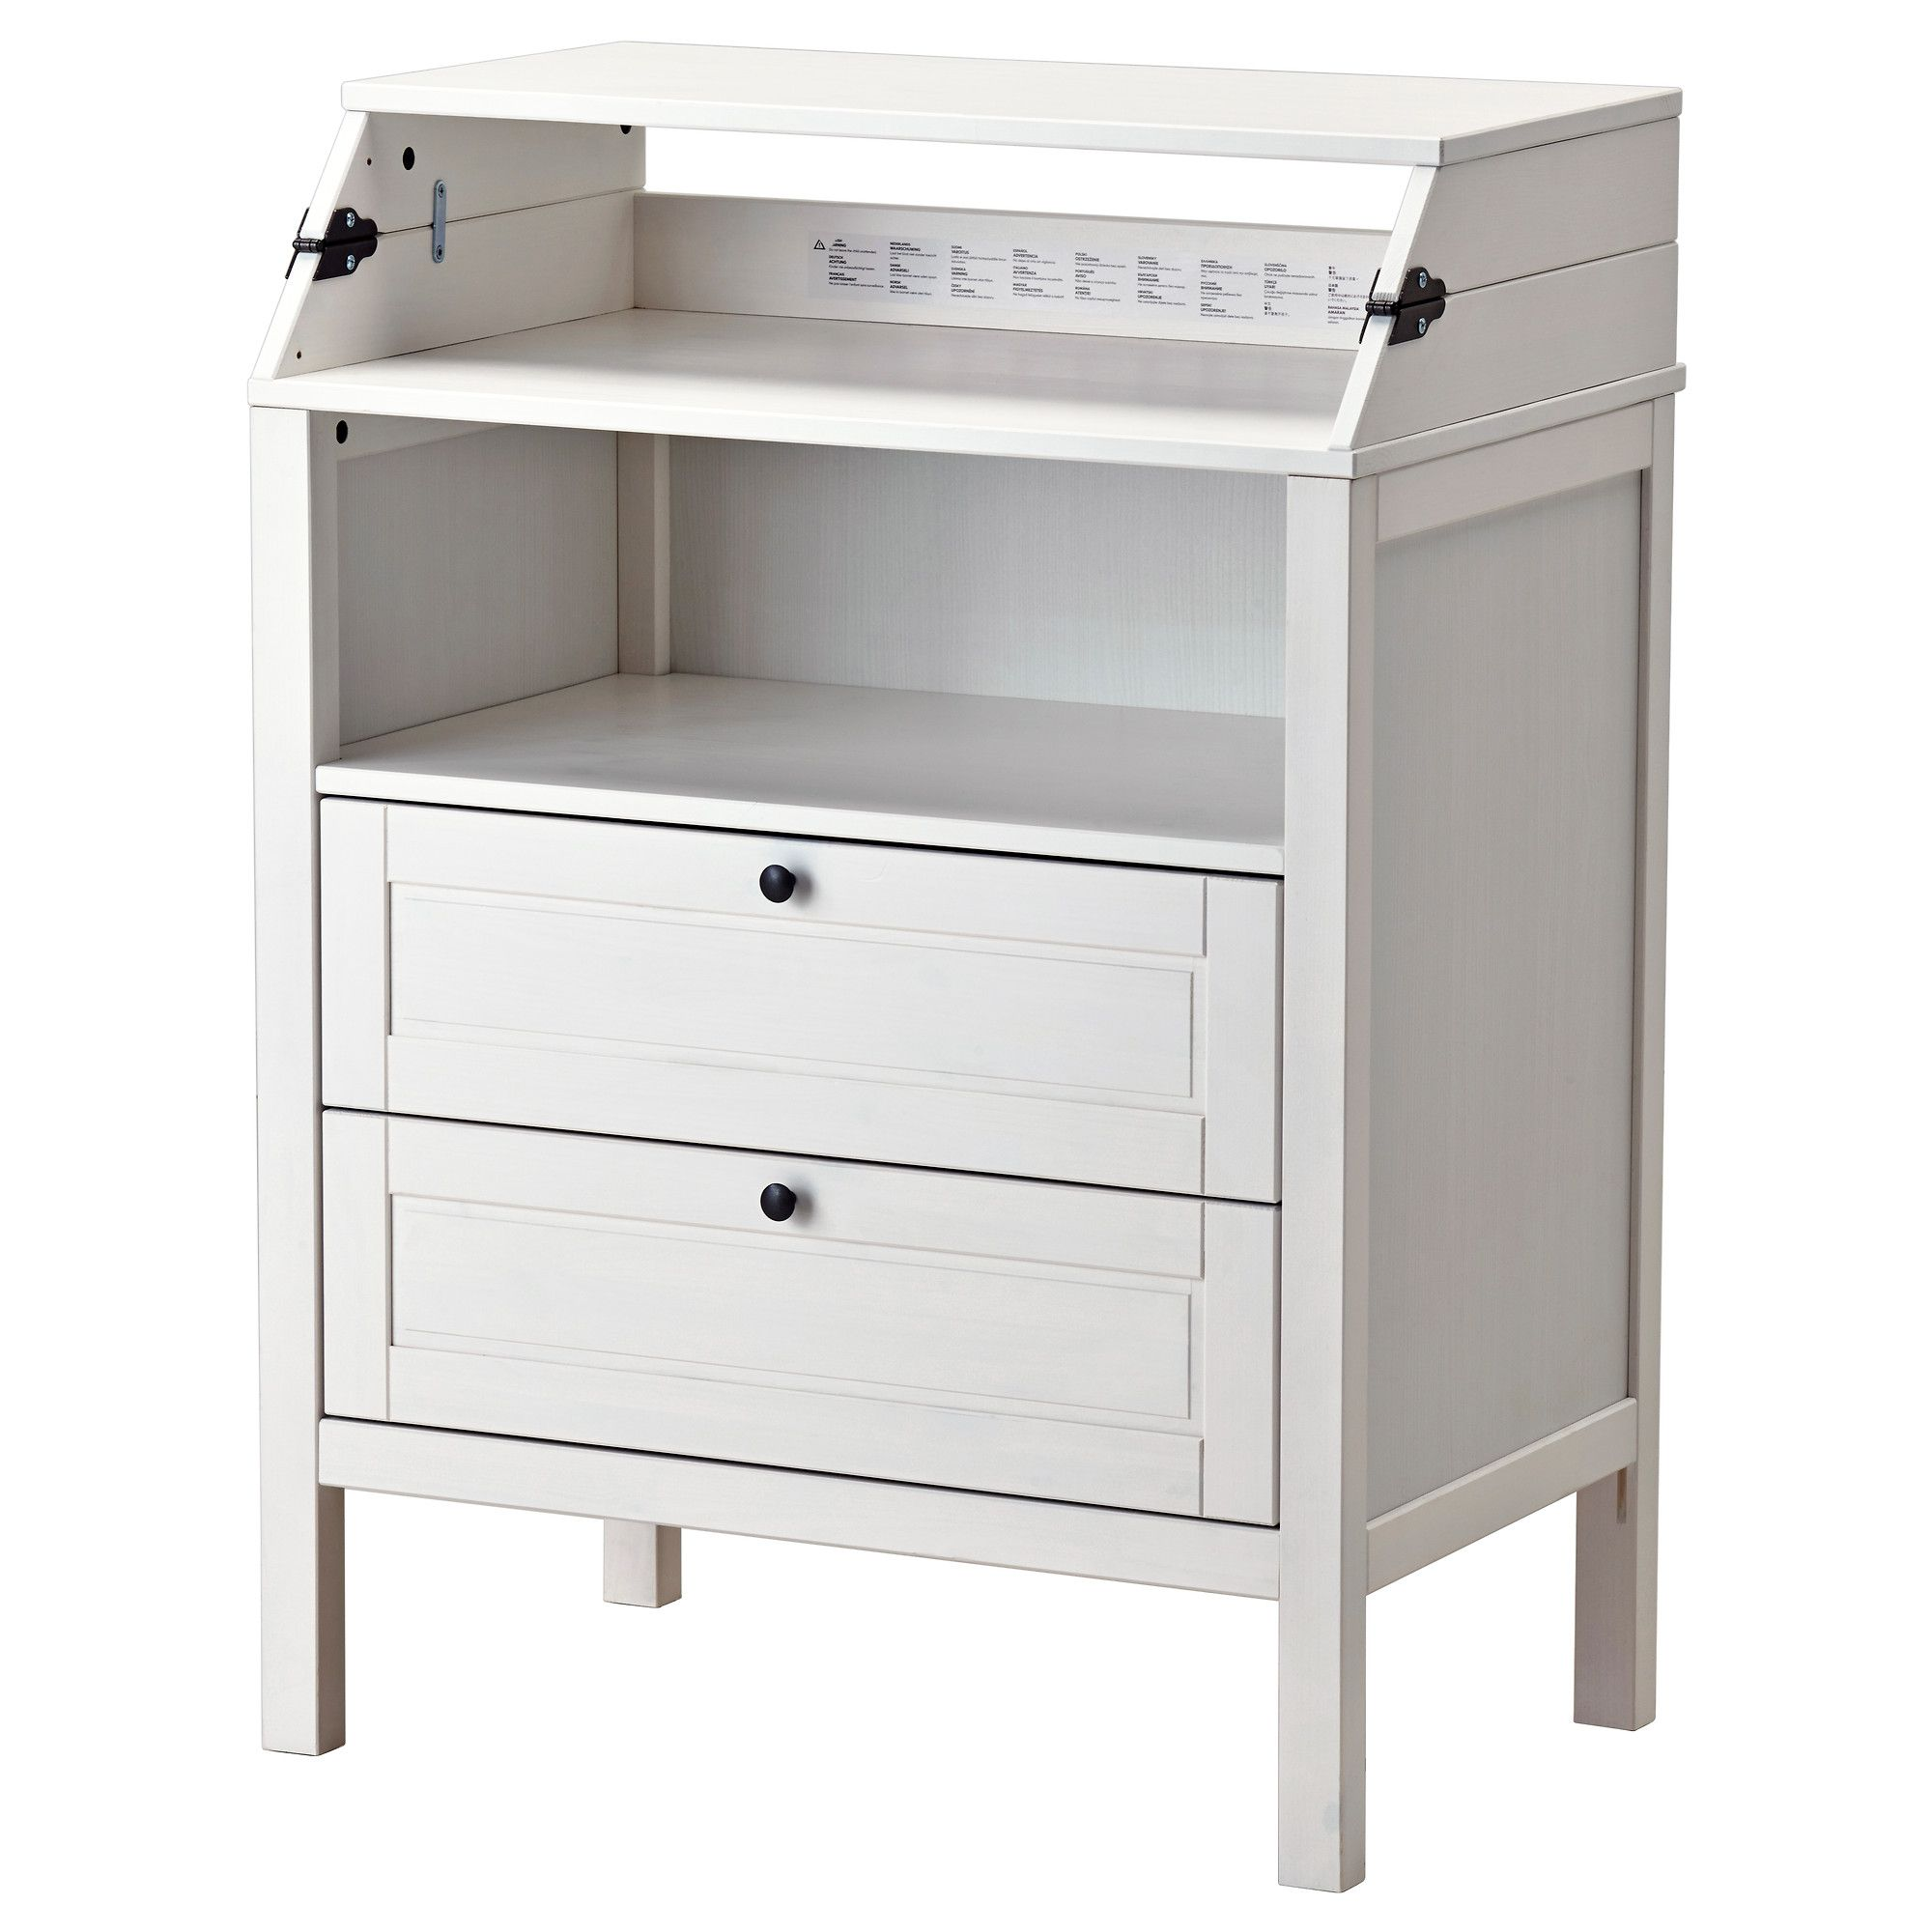 SUNDVIK Changing table/chest of drawers, white | Comodas ikea, Ikea ...